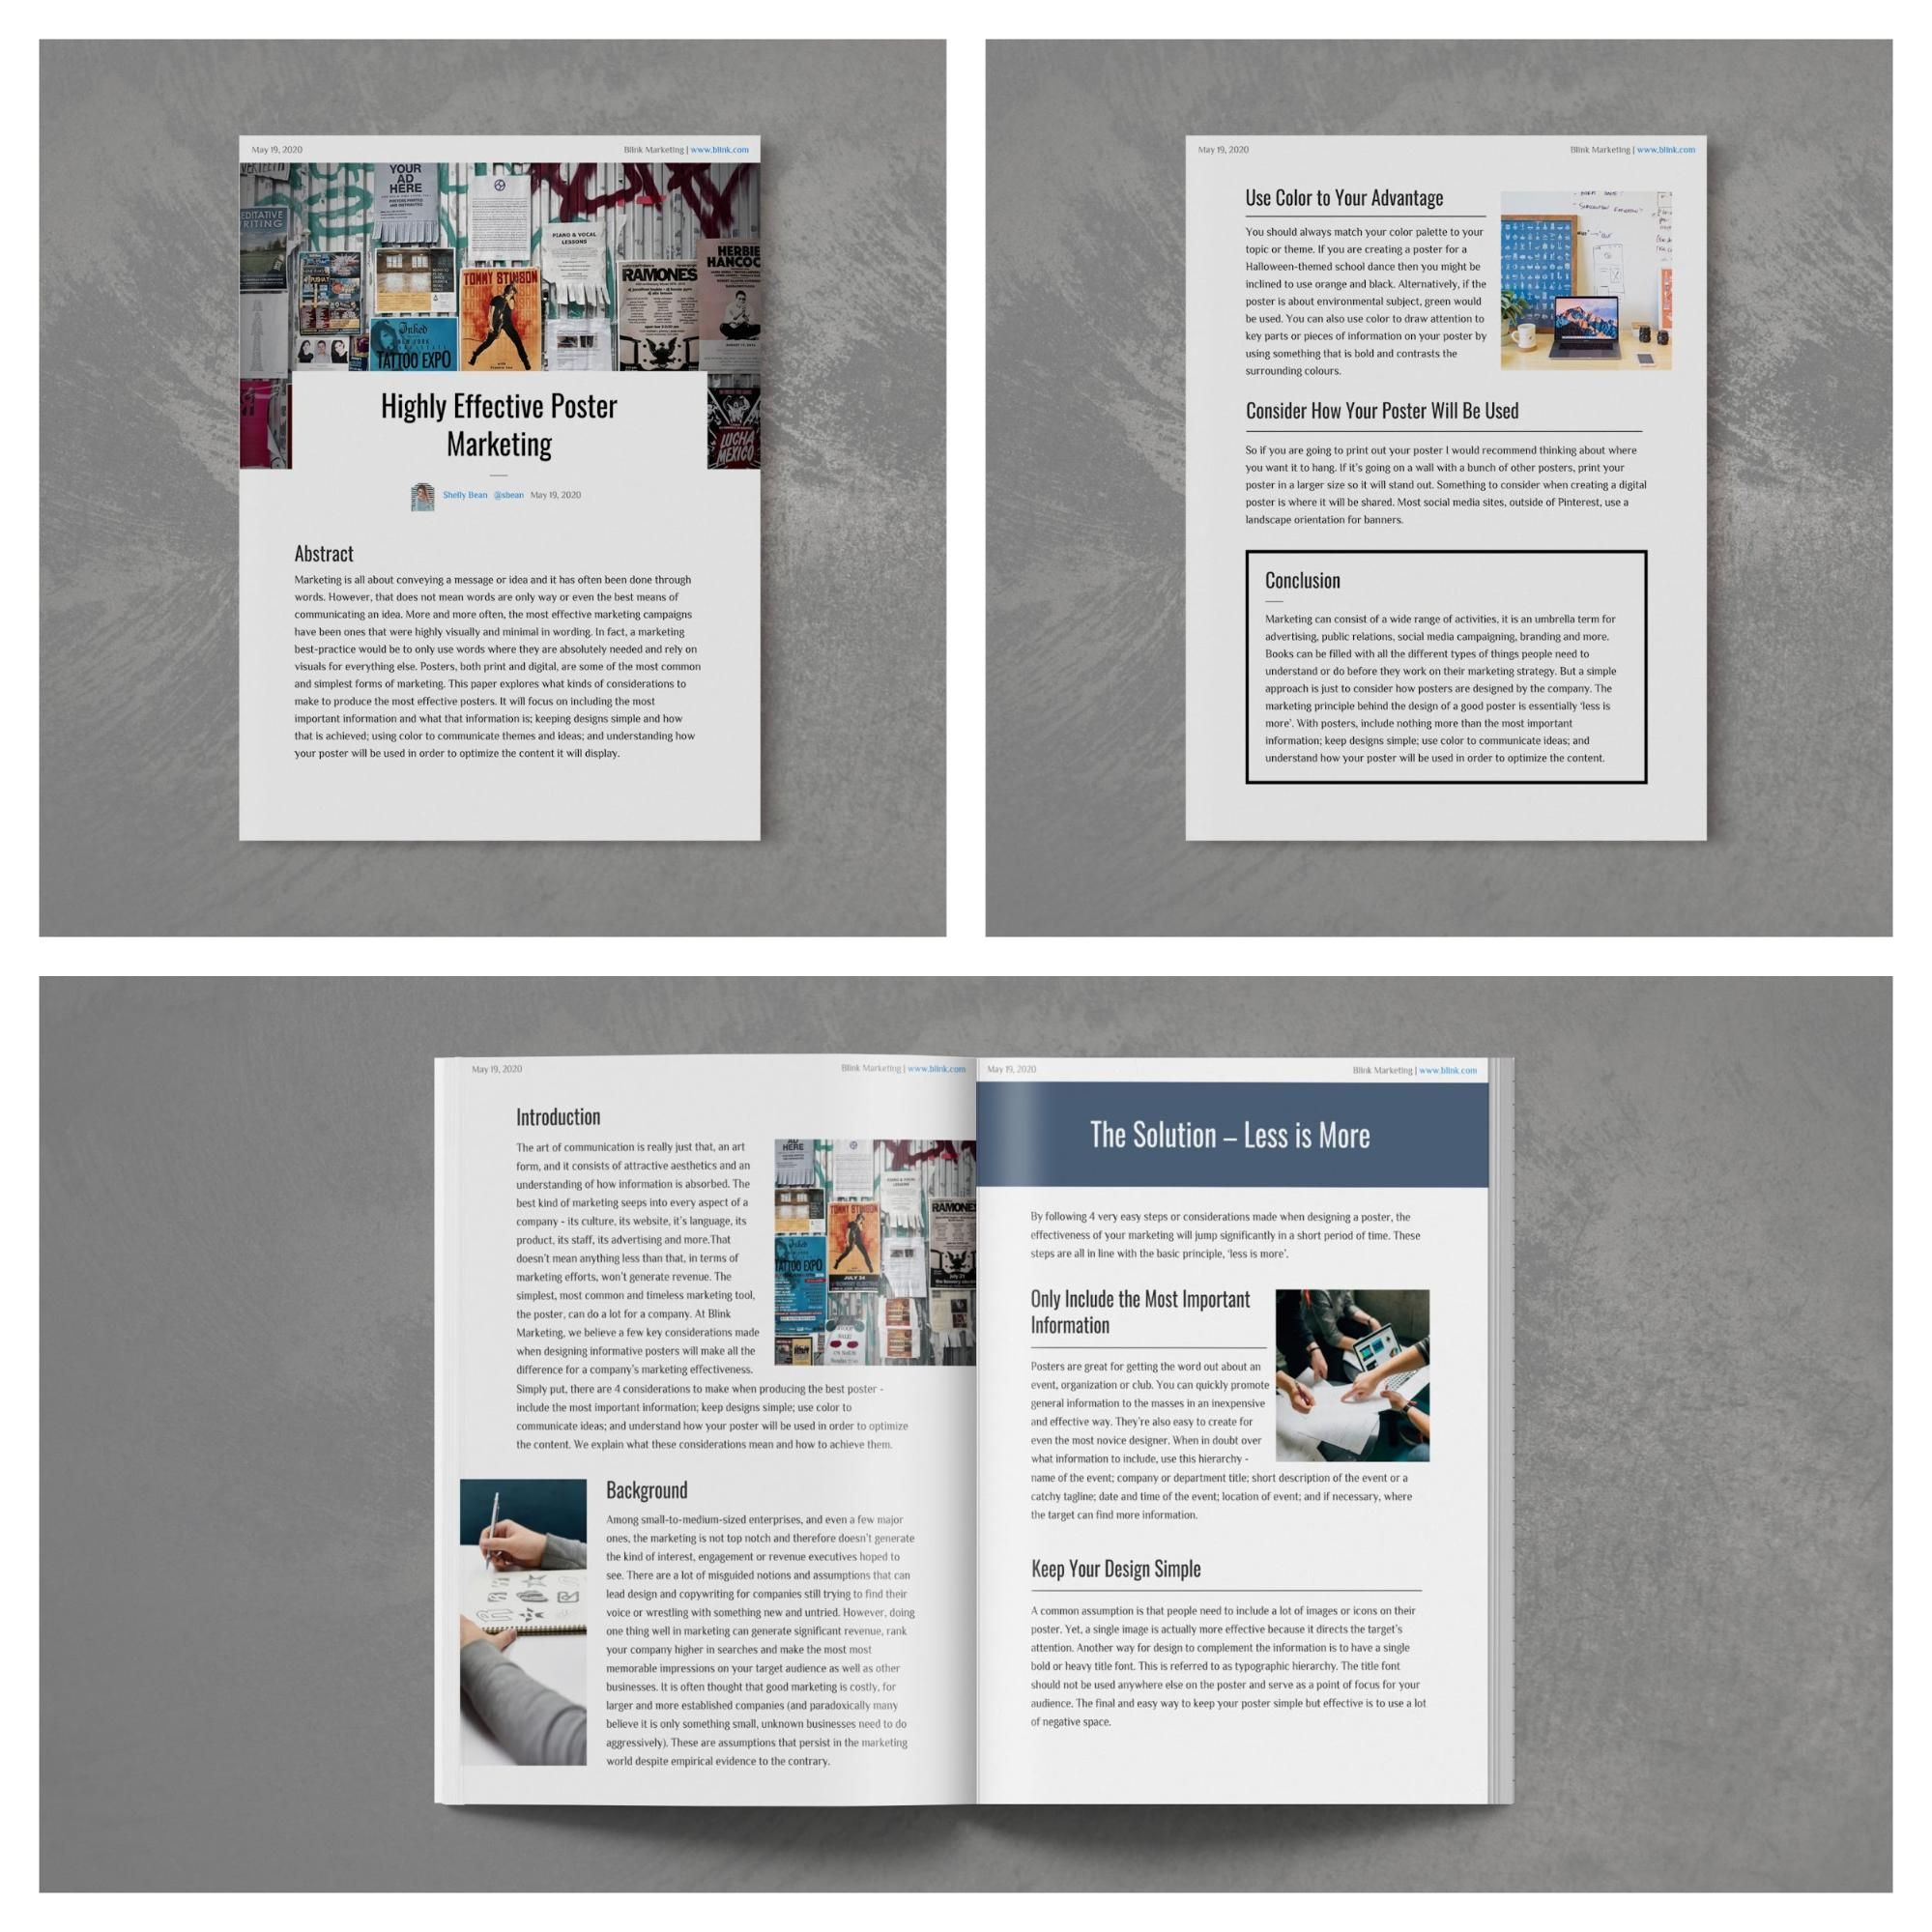 20 White Paper Examples Design Guide Templates Paper Template White Paper Design Guide